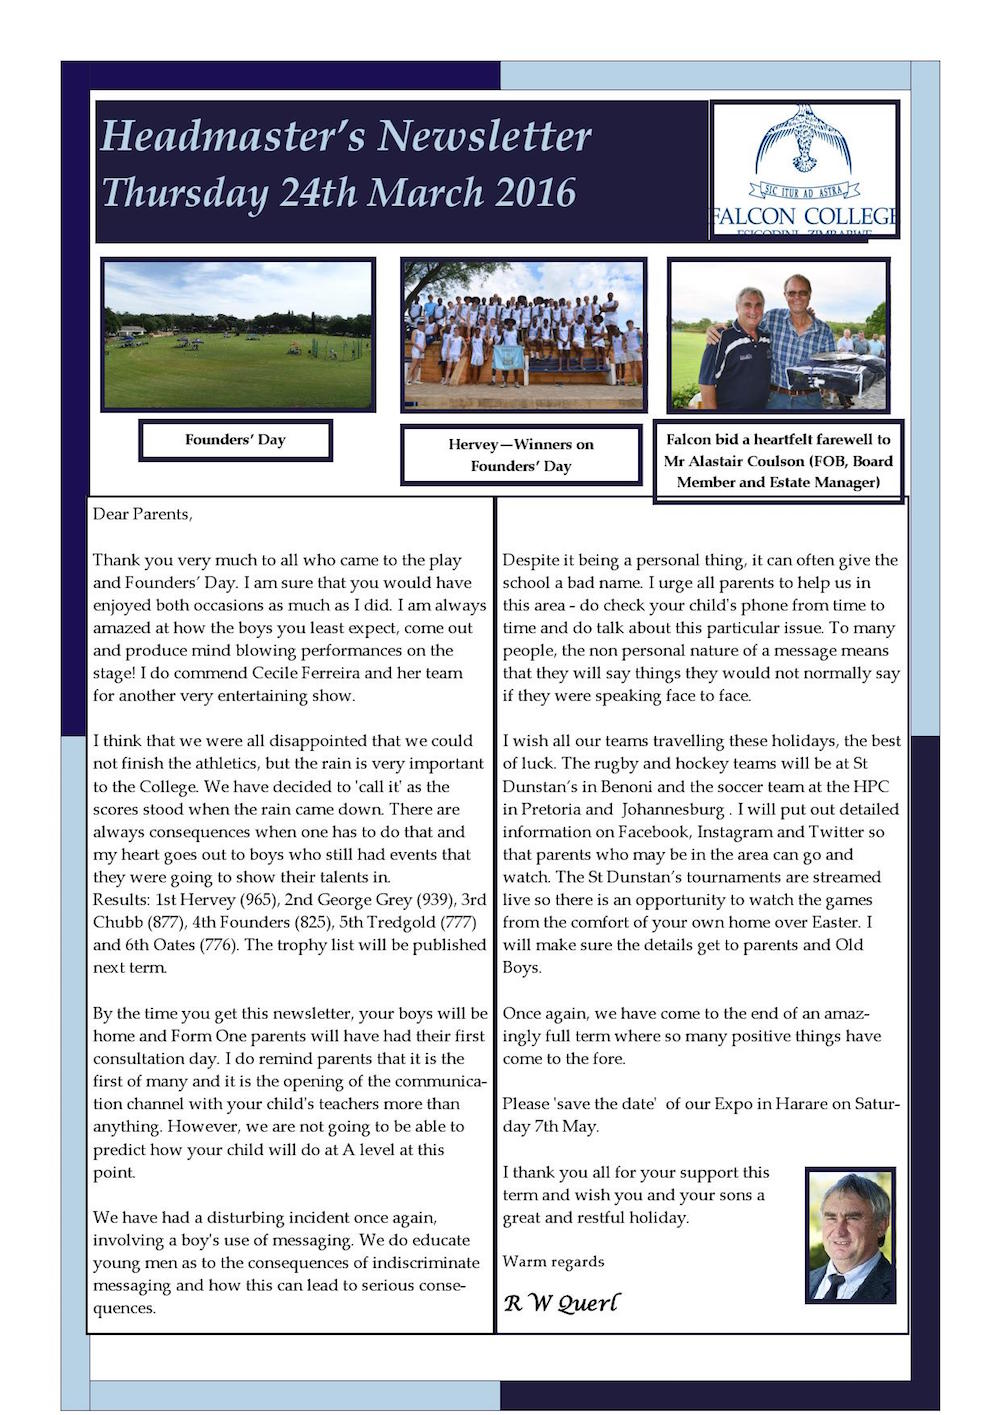 Headmaster's Newsletter Thursday 24th March 2016 edited_000001